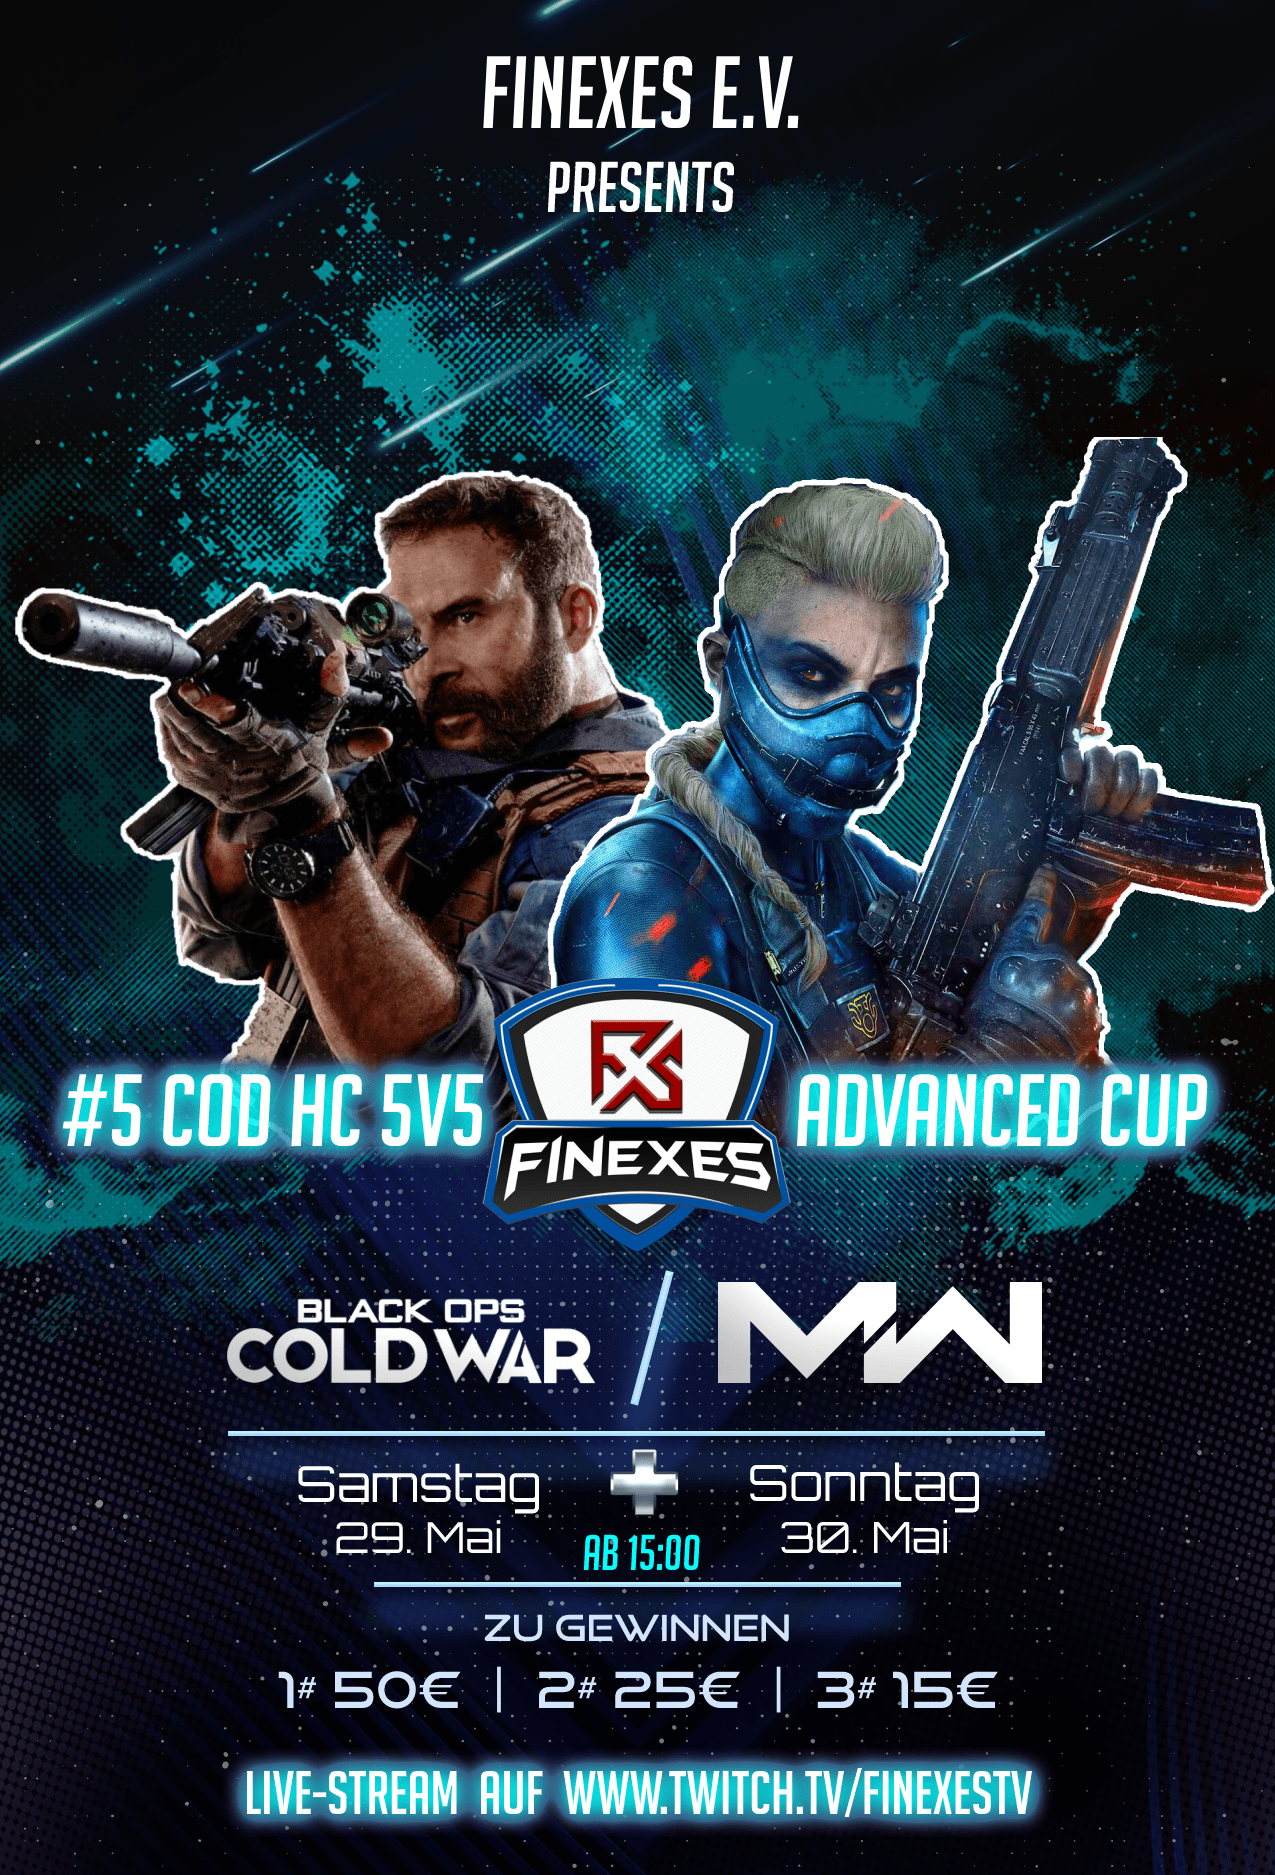 FXS_ADVANCED_CUP_#5 (2).png